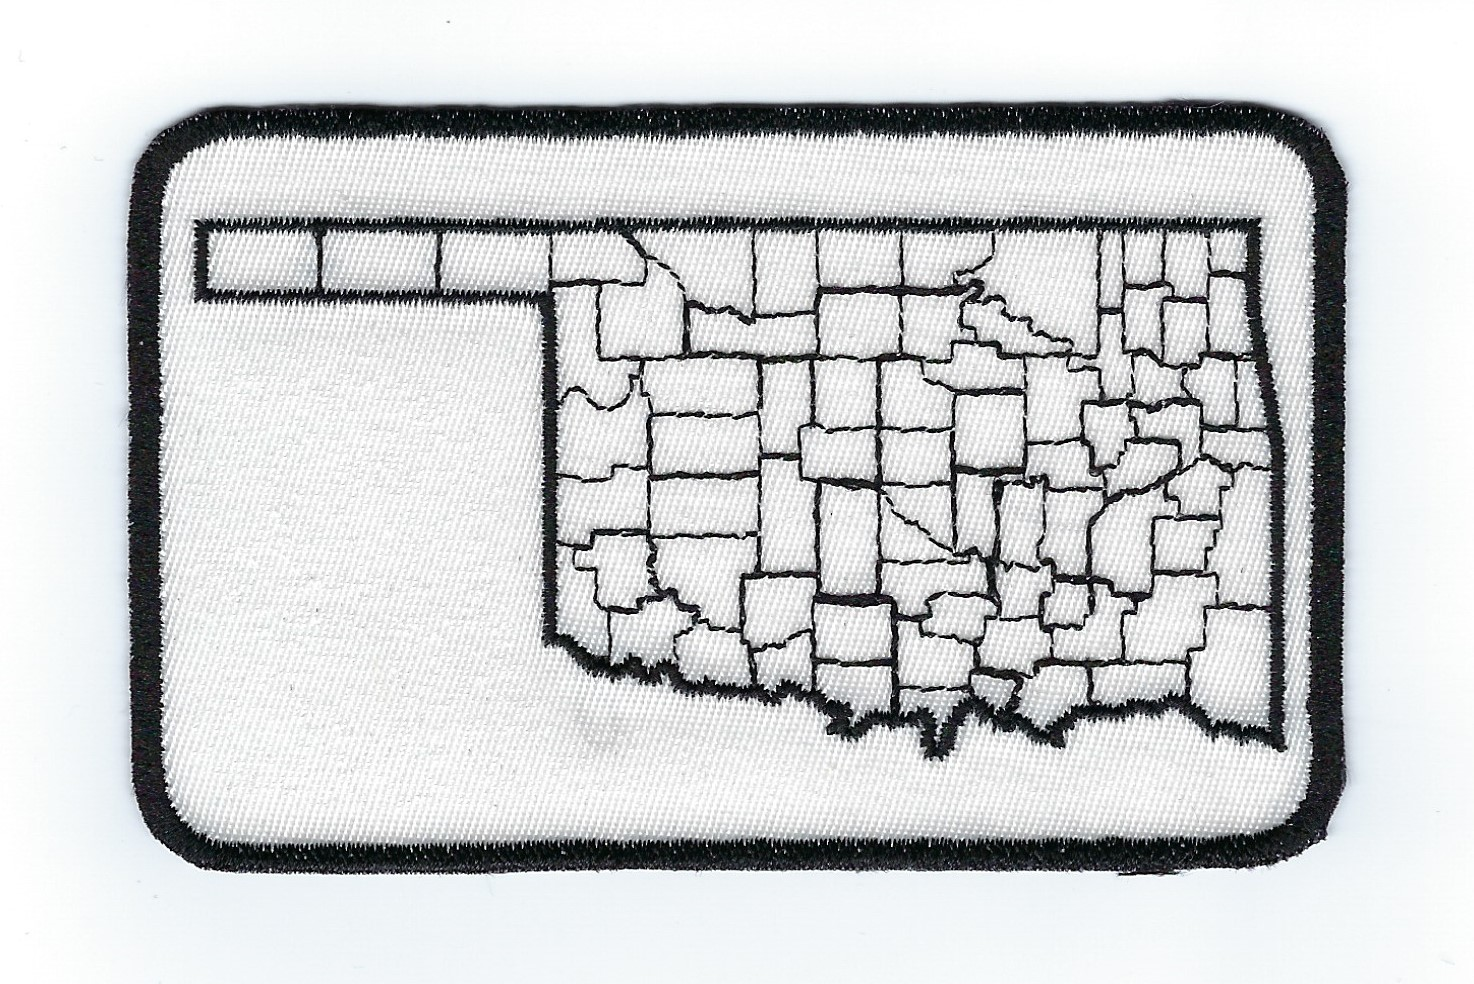 Oklahoma County Map 4' 4.0' x 2.6'